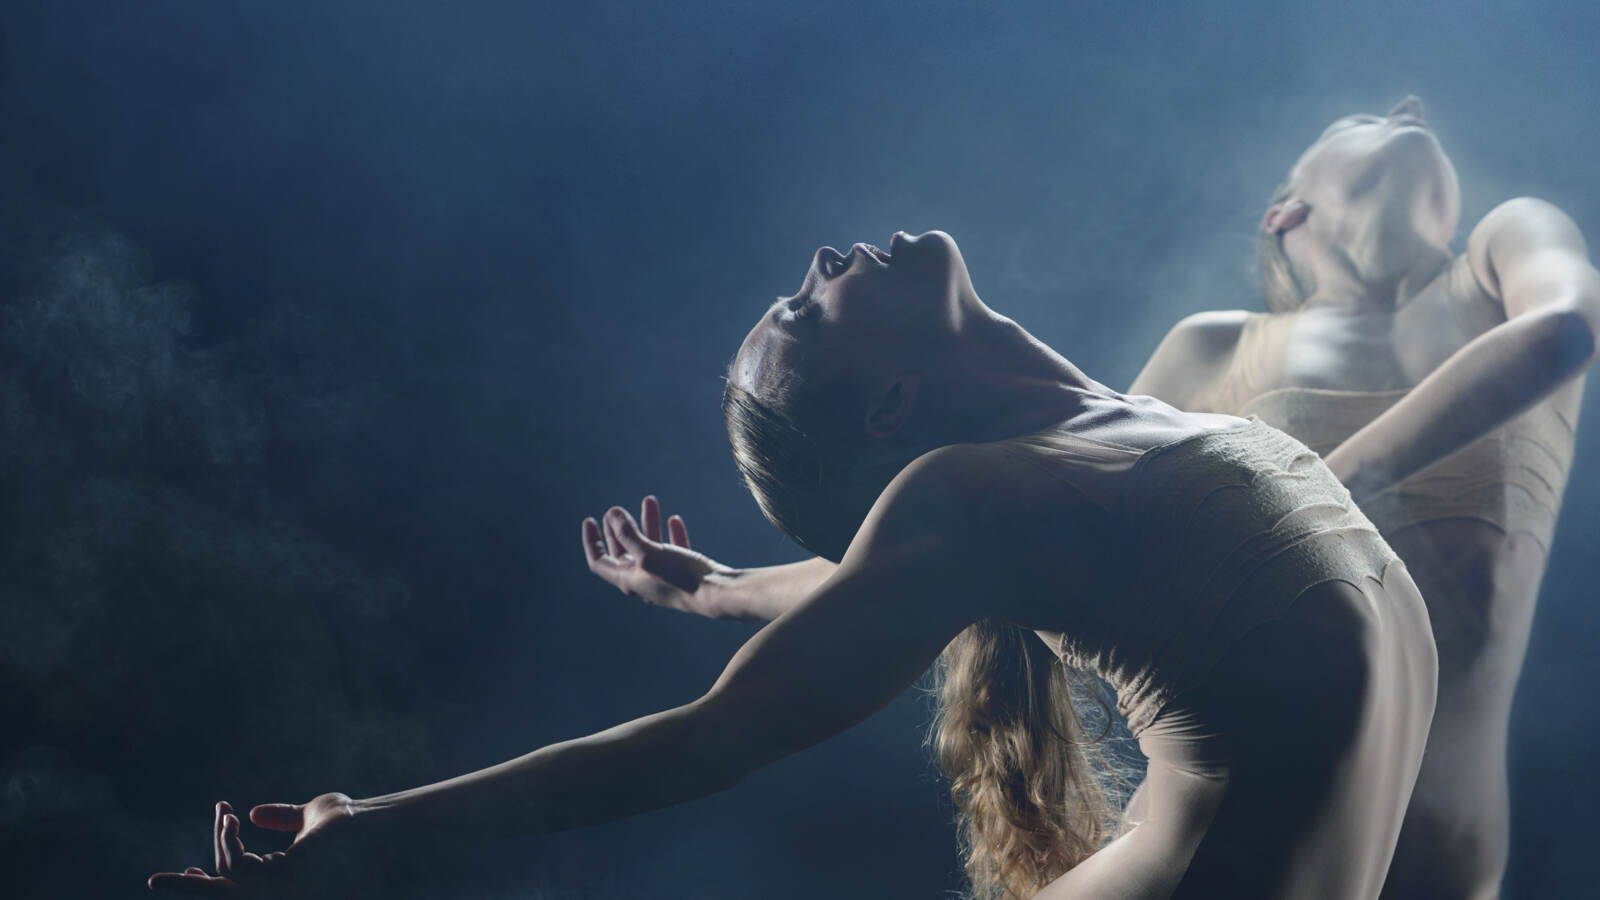 Two dancers stand under white stage lighting in smoke, the dancer in the foreground stands with arms outstretched behind her.